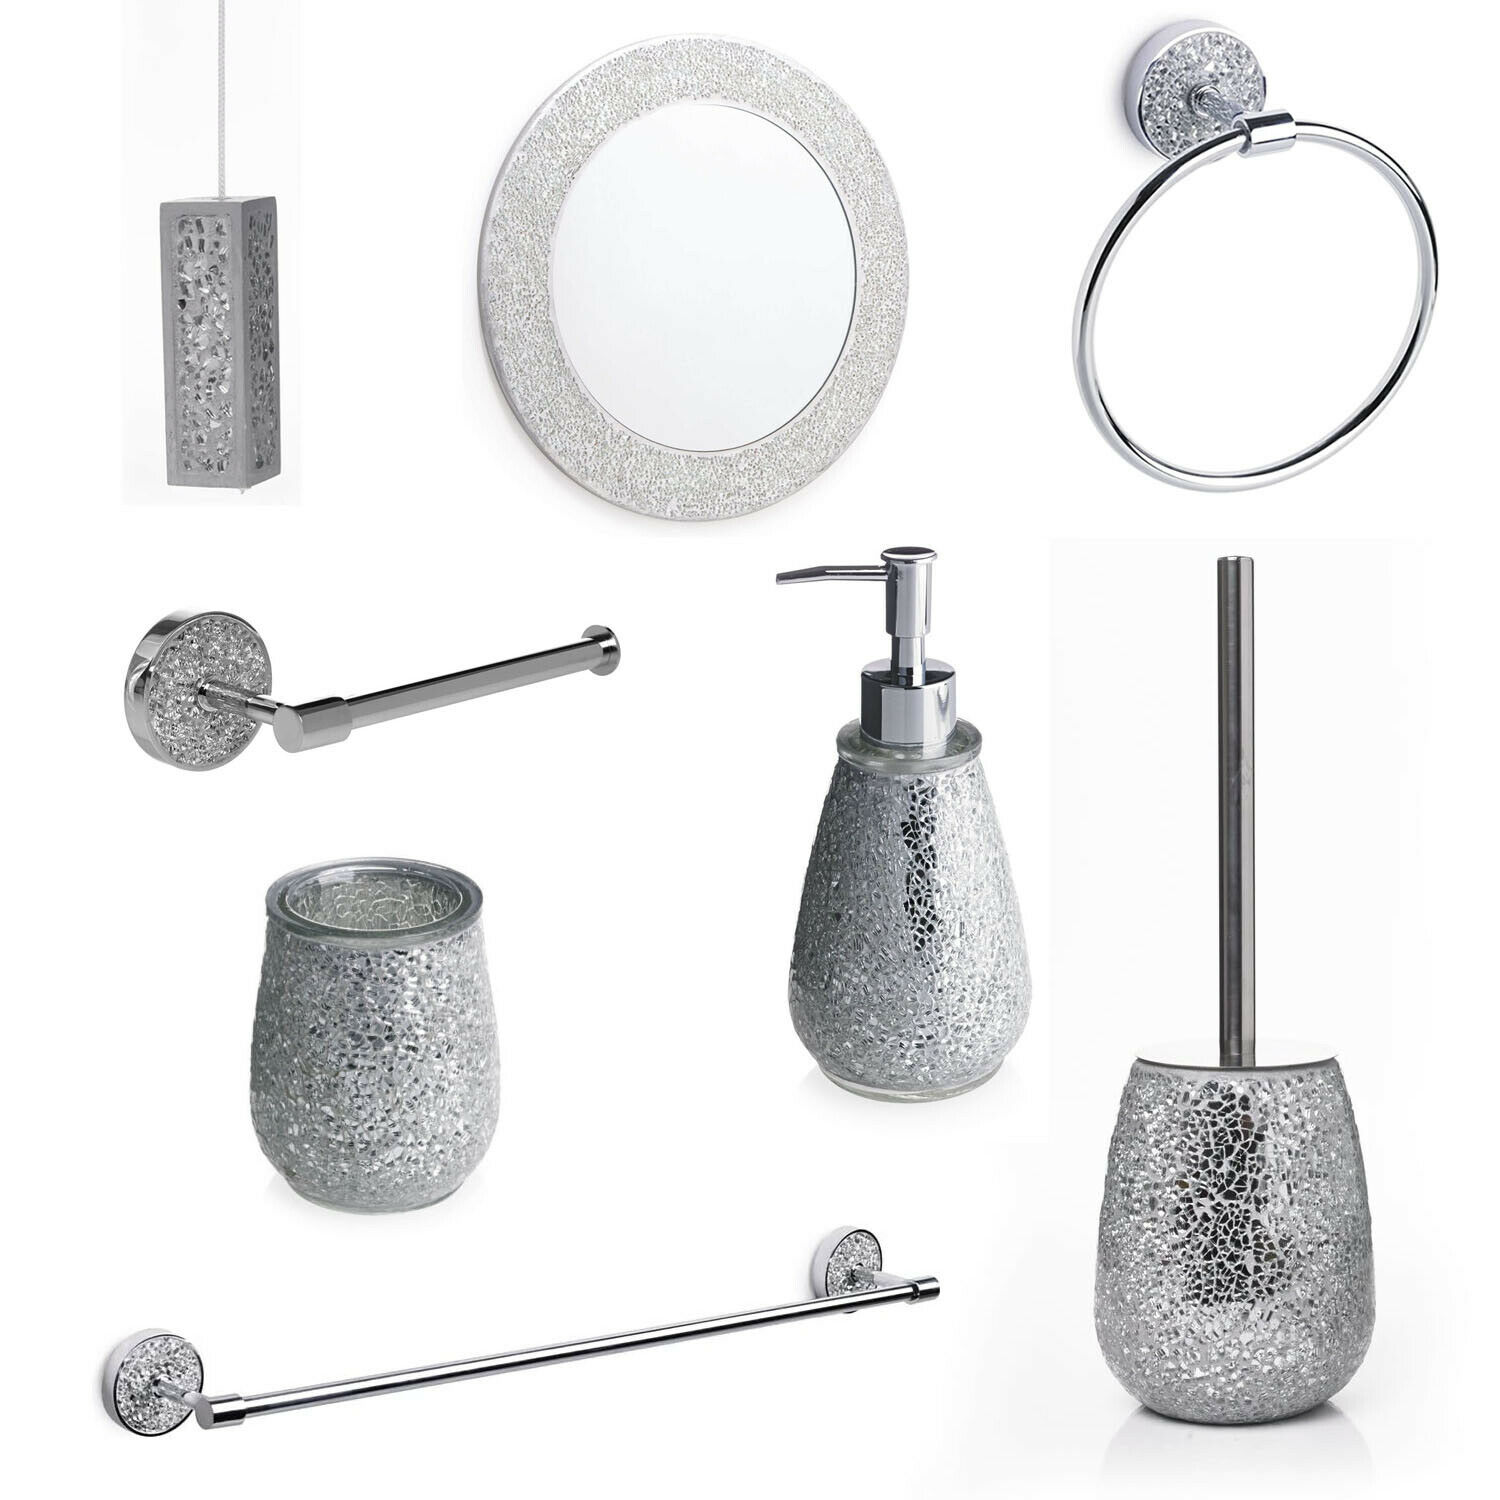 Silver mosaic bathroom accessories silver sparkle mirror for Bathroom accessories silver